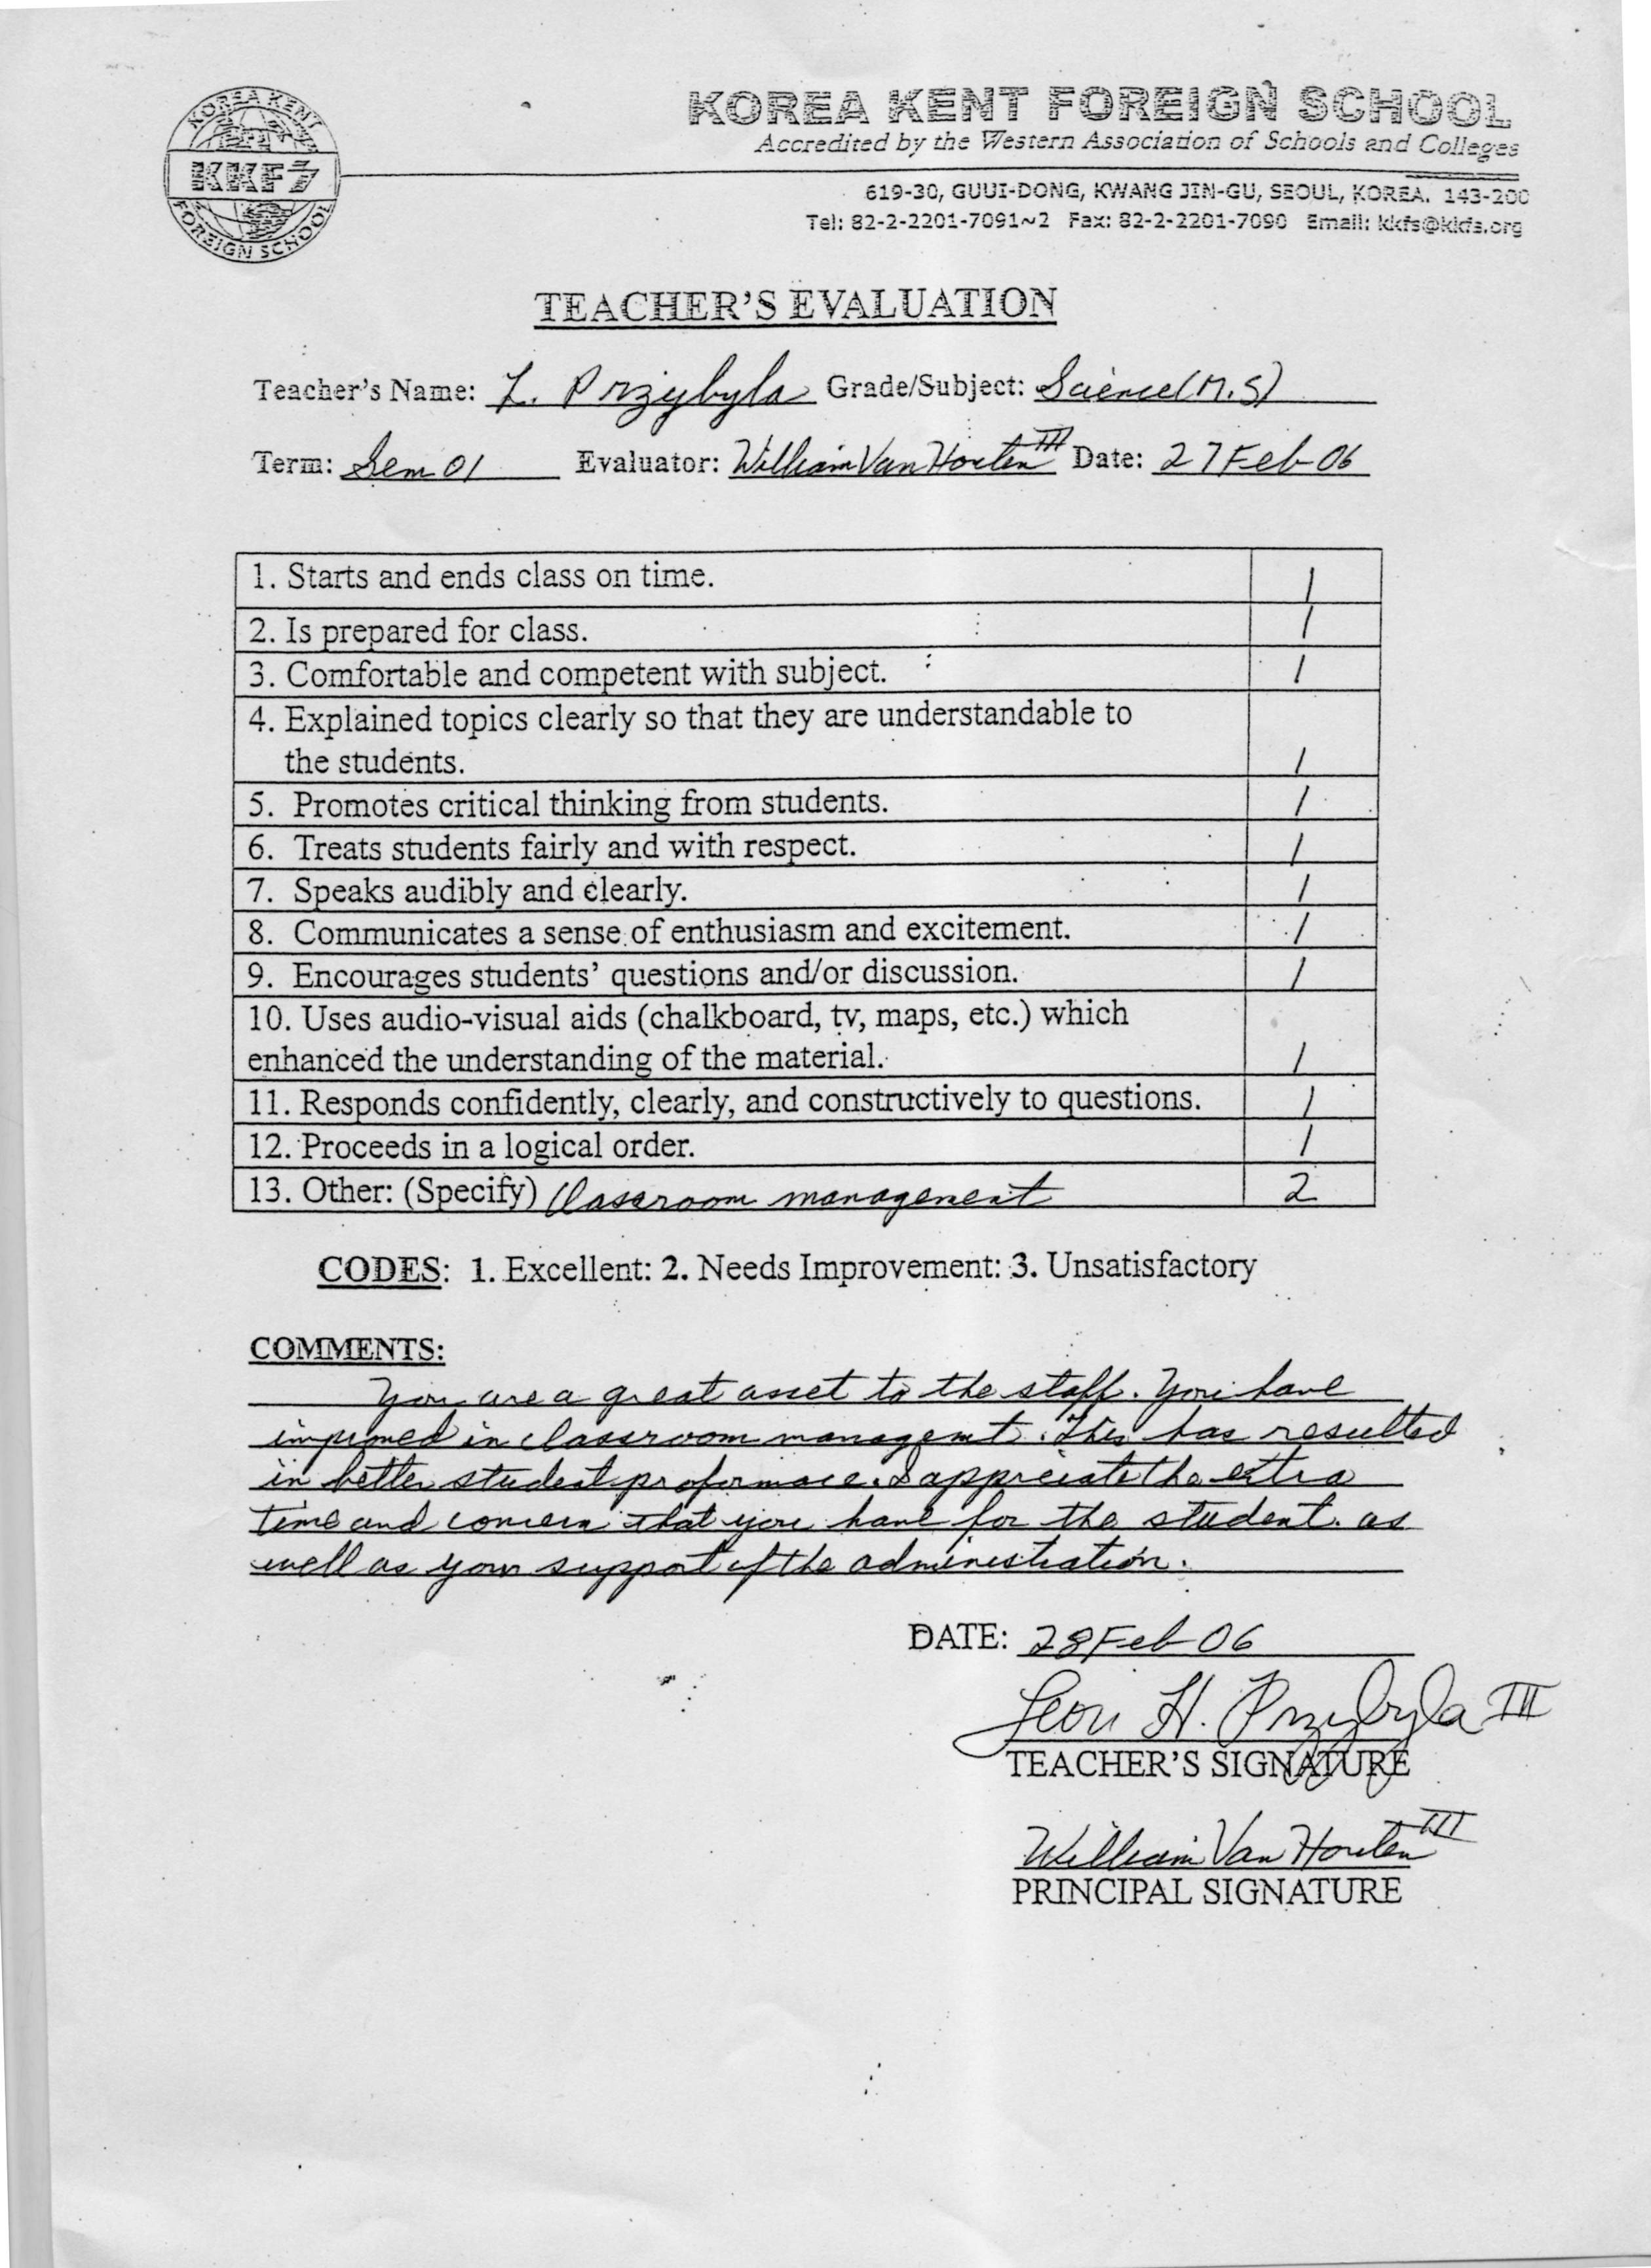 College essay rubric - The Lodges of Colorado Springs Published ...